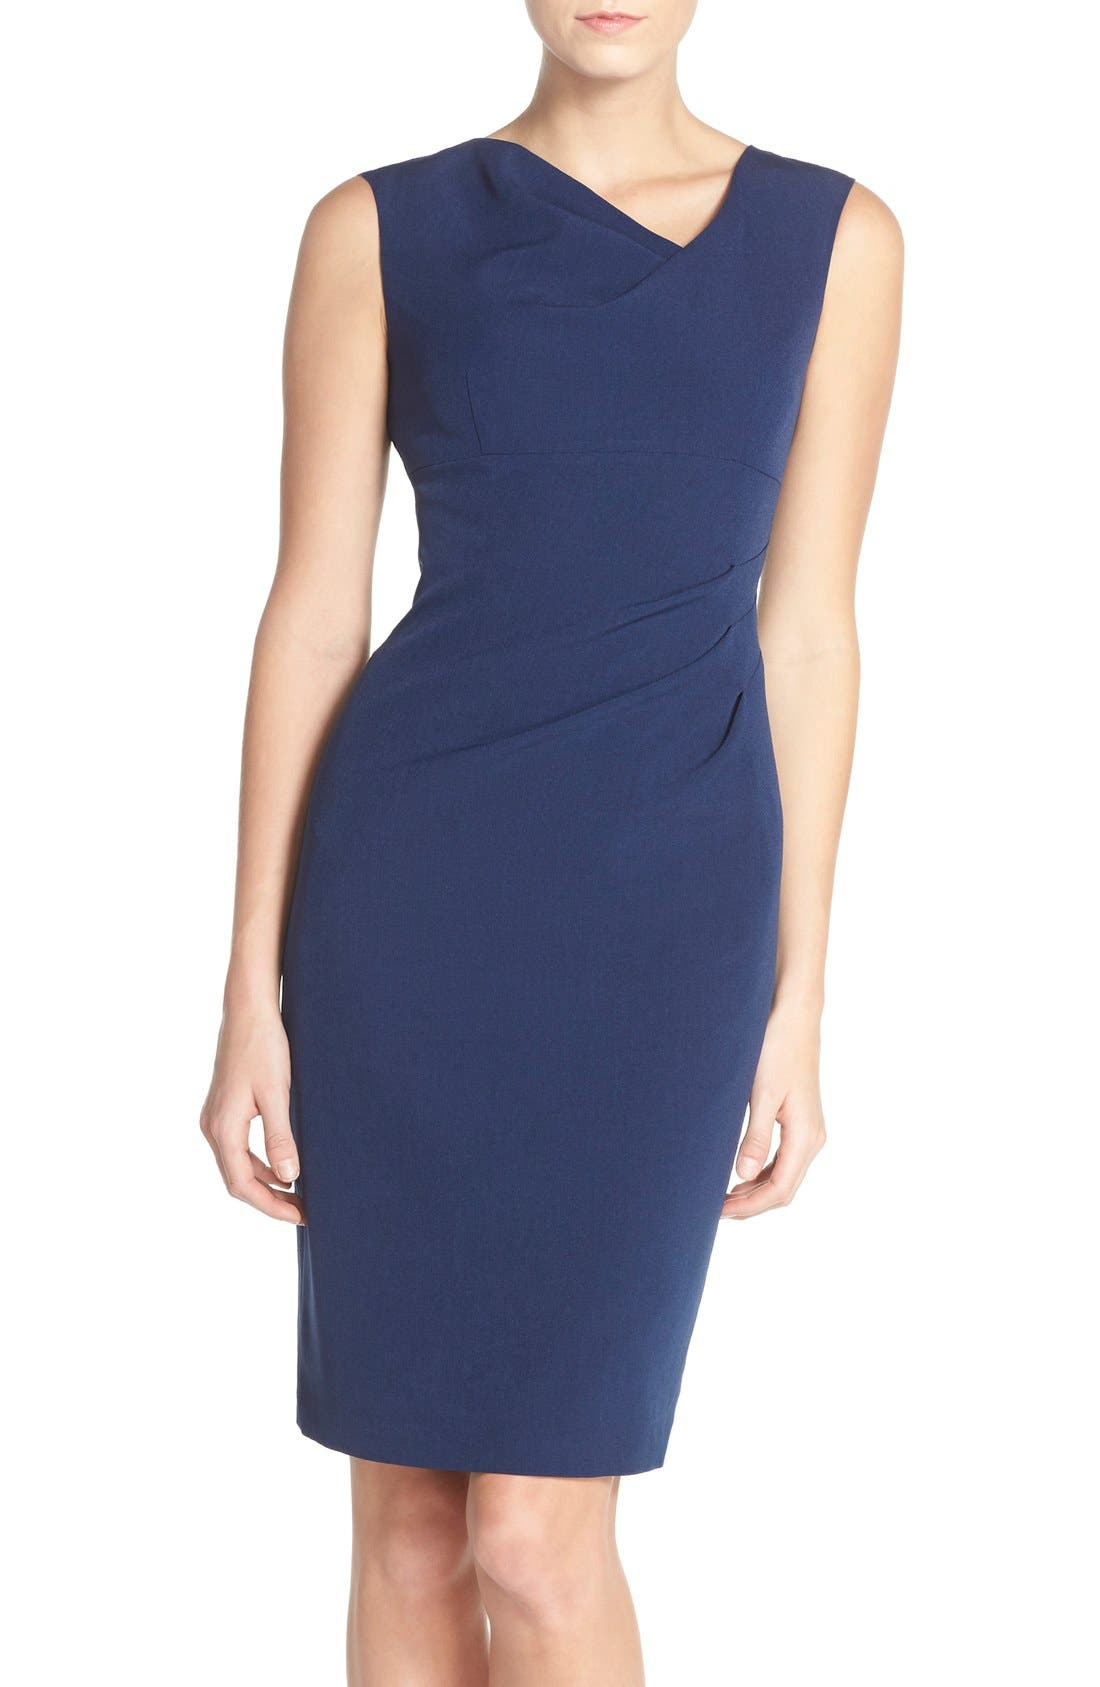 Main Image - Adrianna Papell Drape Neck Crepe Sheath Dress